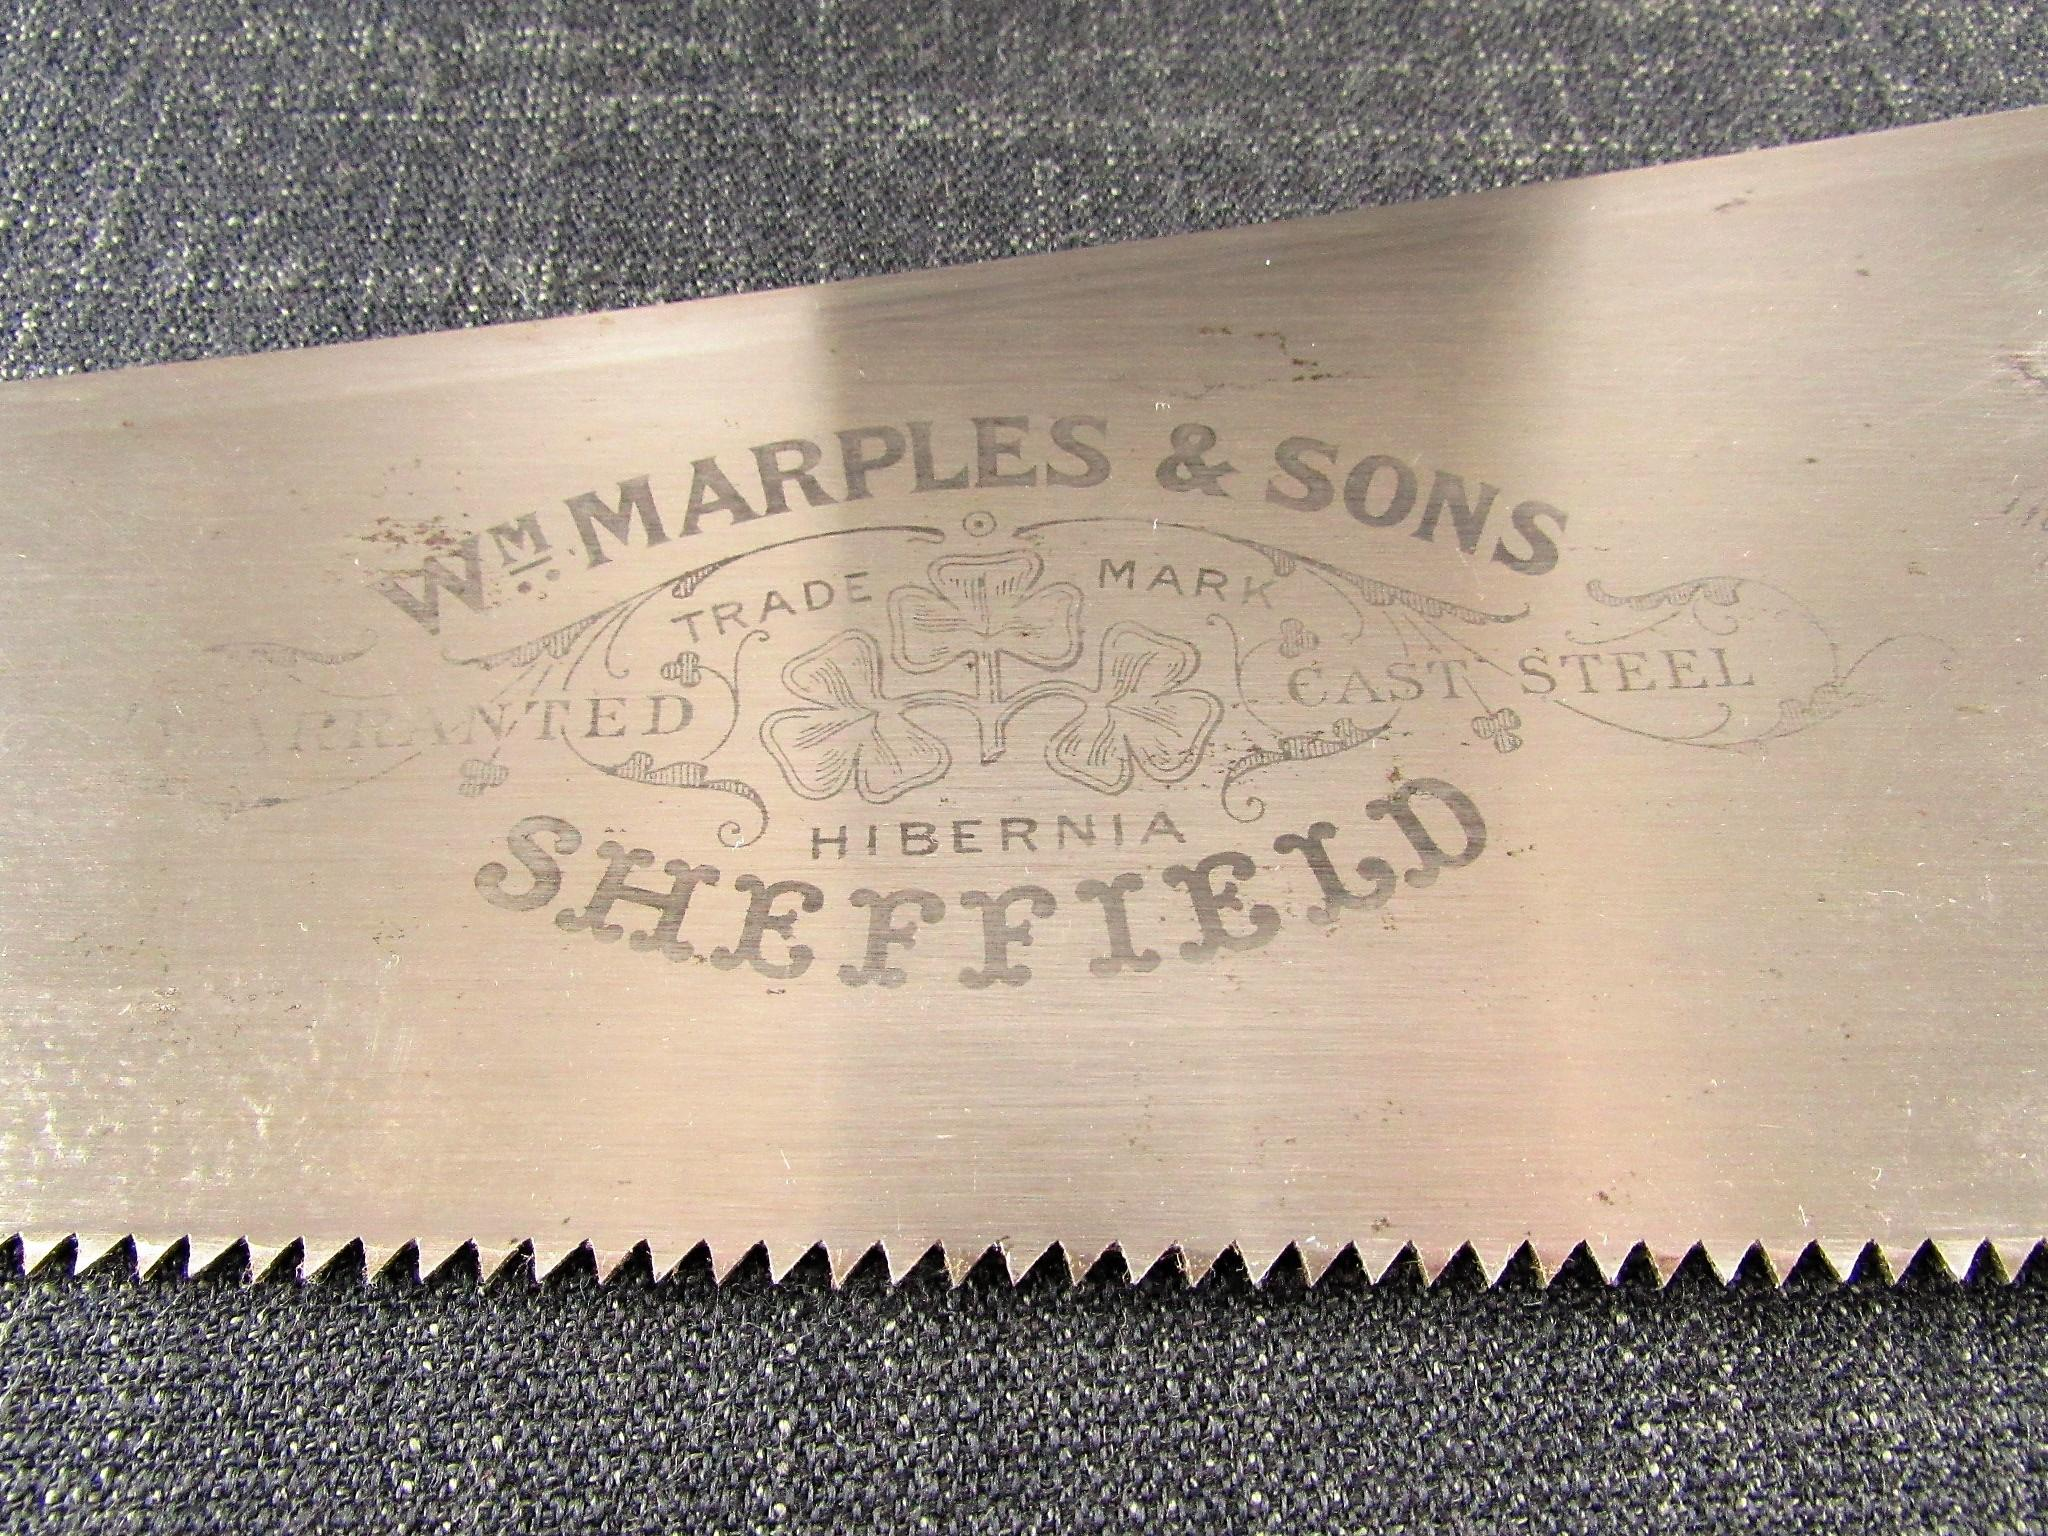 MARPLES Panel Saw - No.2521 24 inch Rip Cut